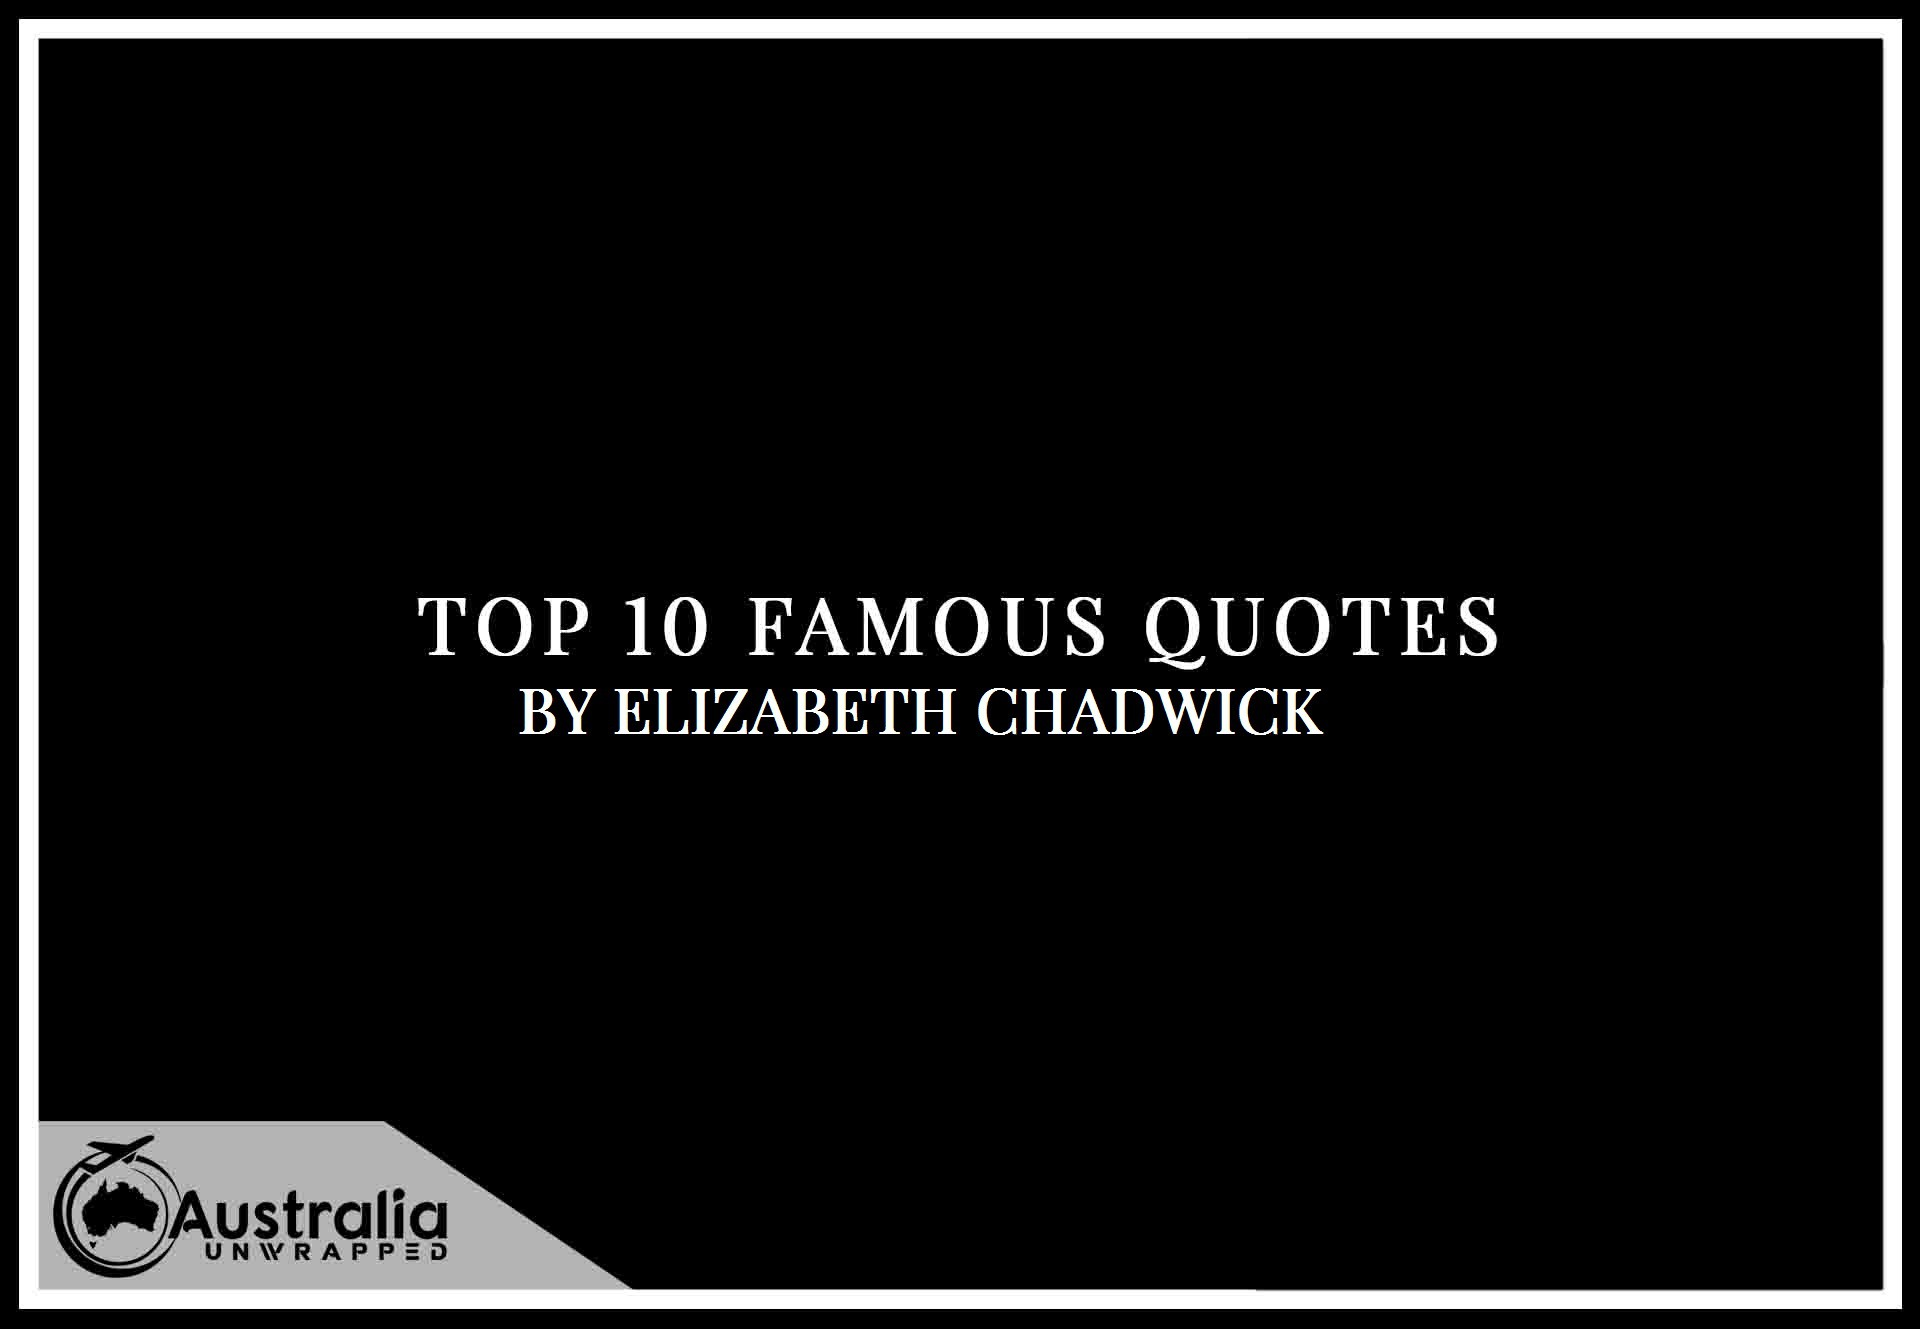 Elizabeth Chadwick's Top 10 Popular and Famous Quotes